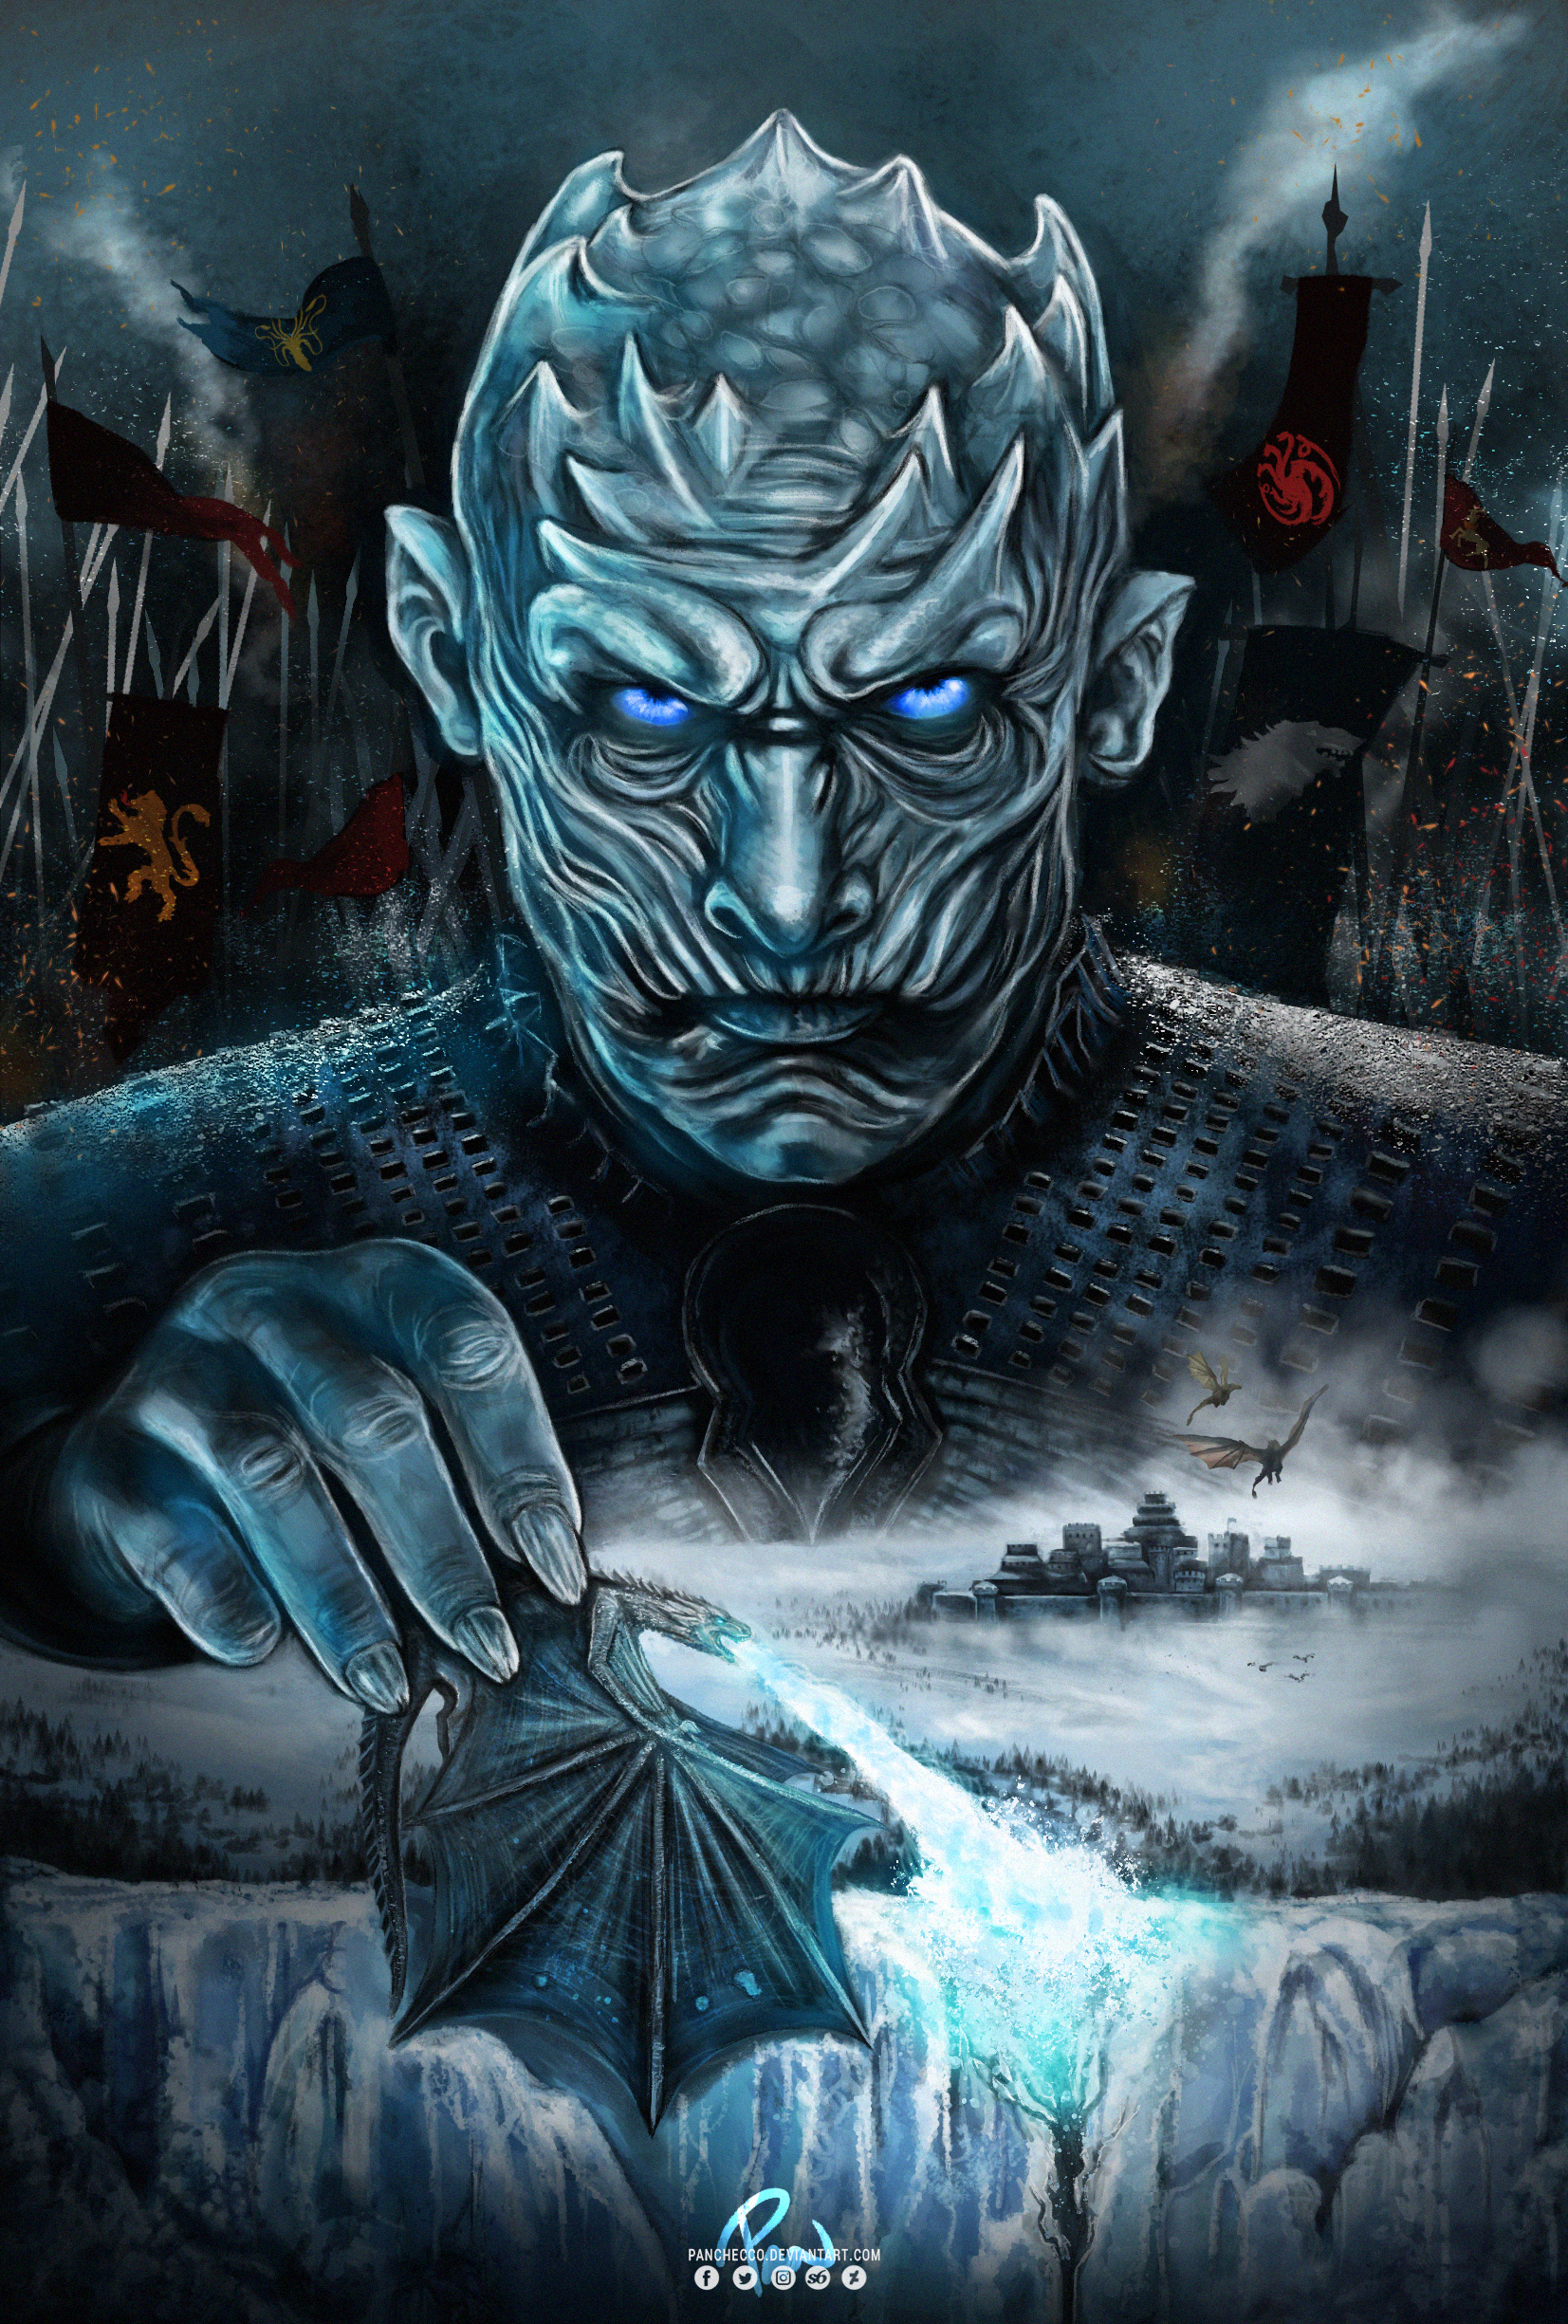 Spoilers Night King Fan Art By Me Music Indieartist Chicago Night King Seasons Posters Game Of Thrones Art